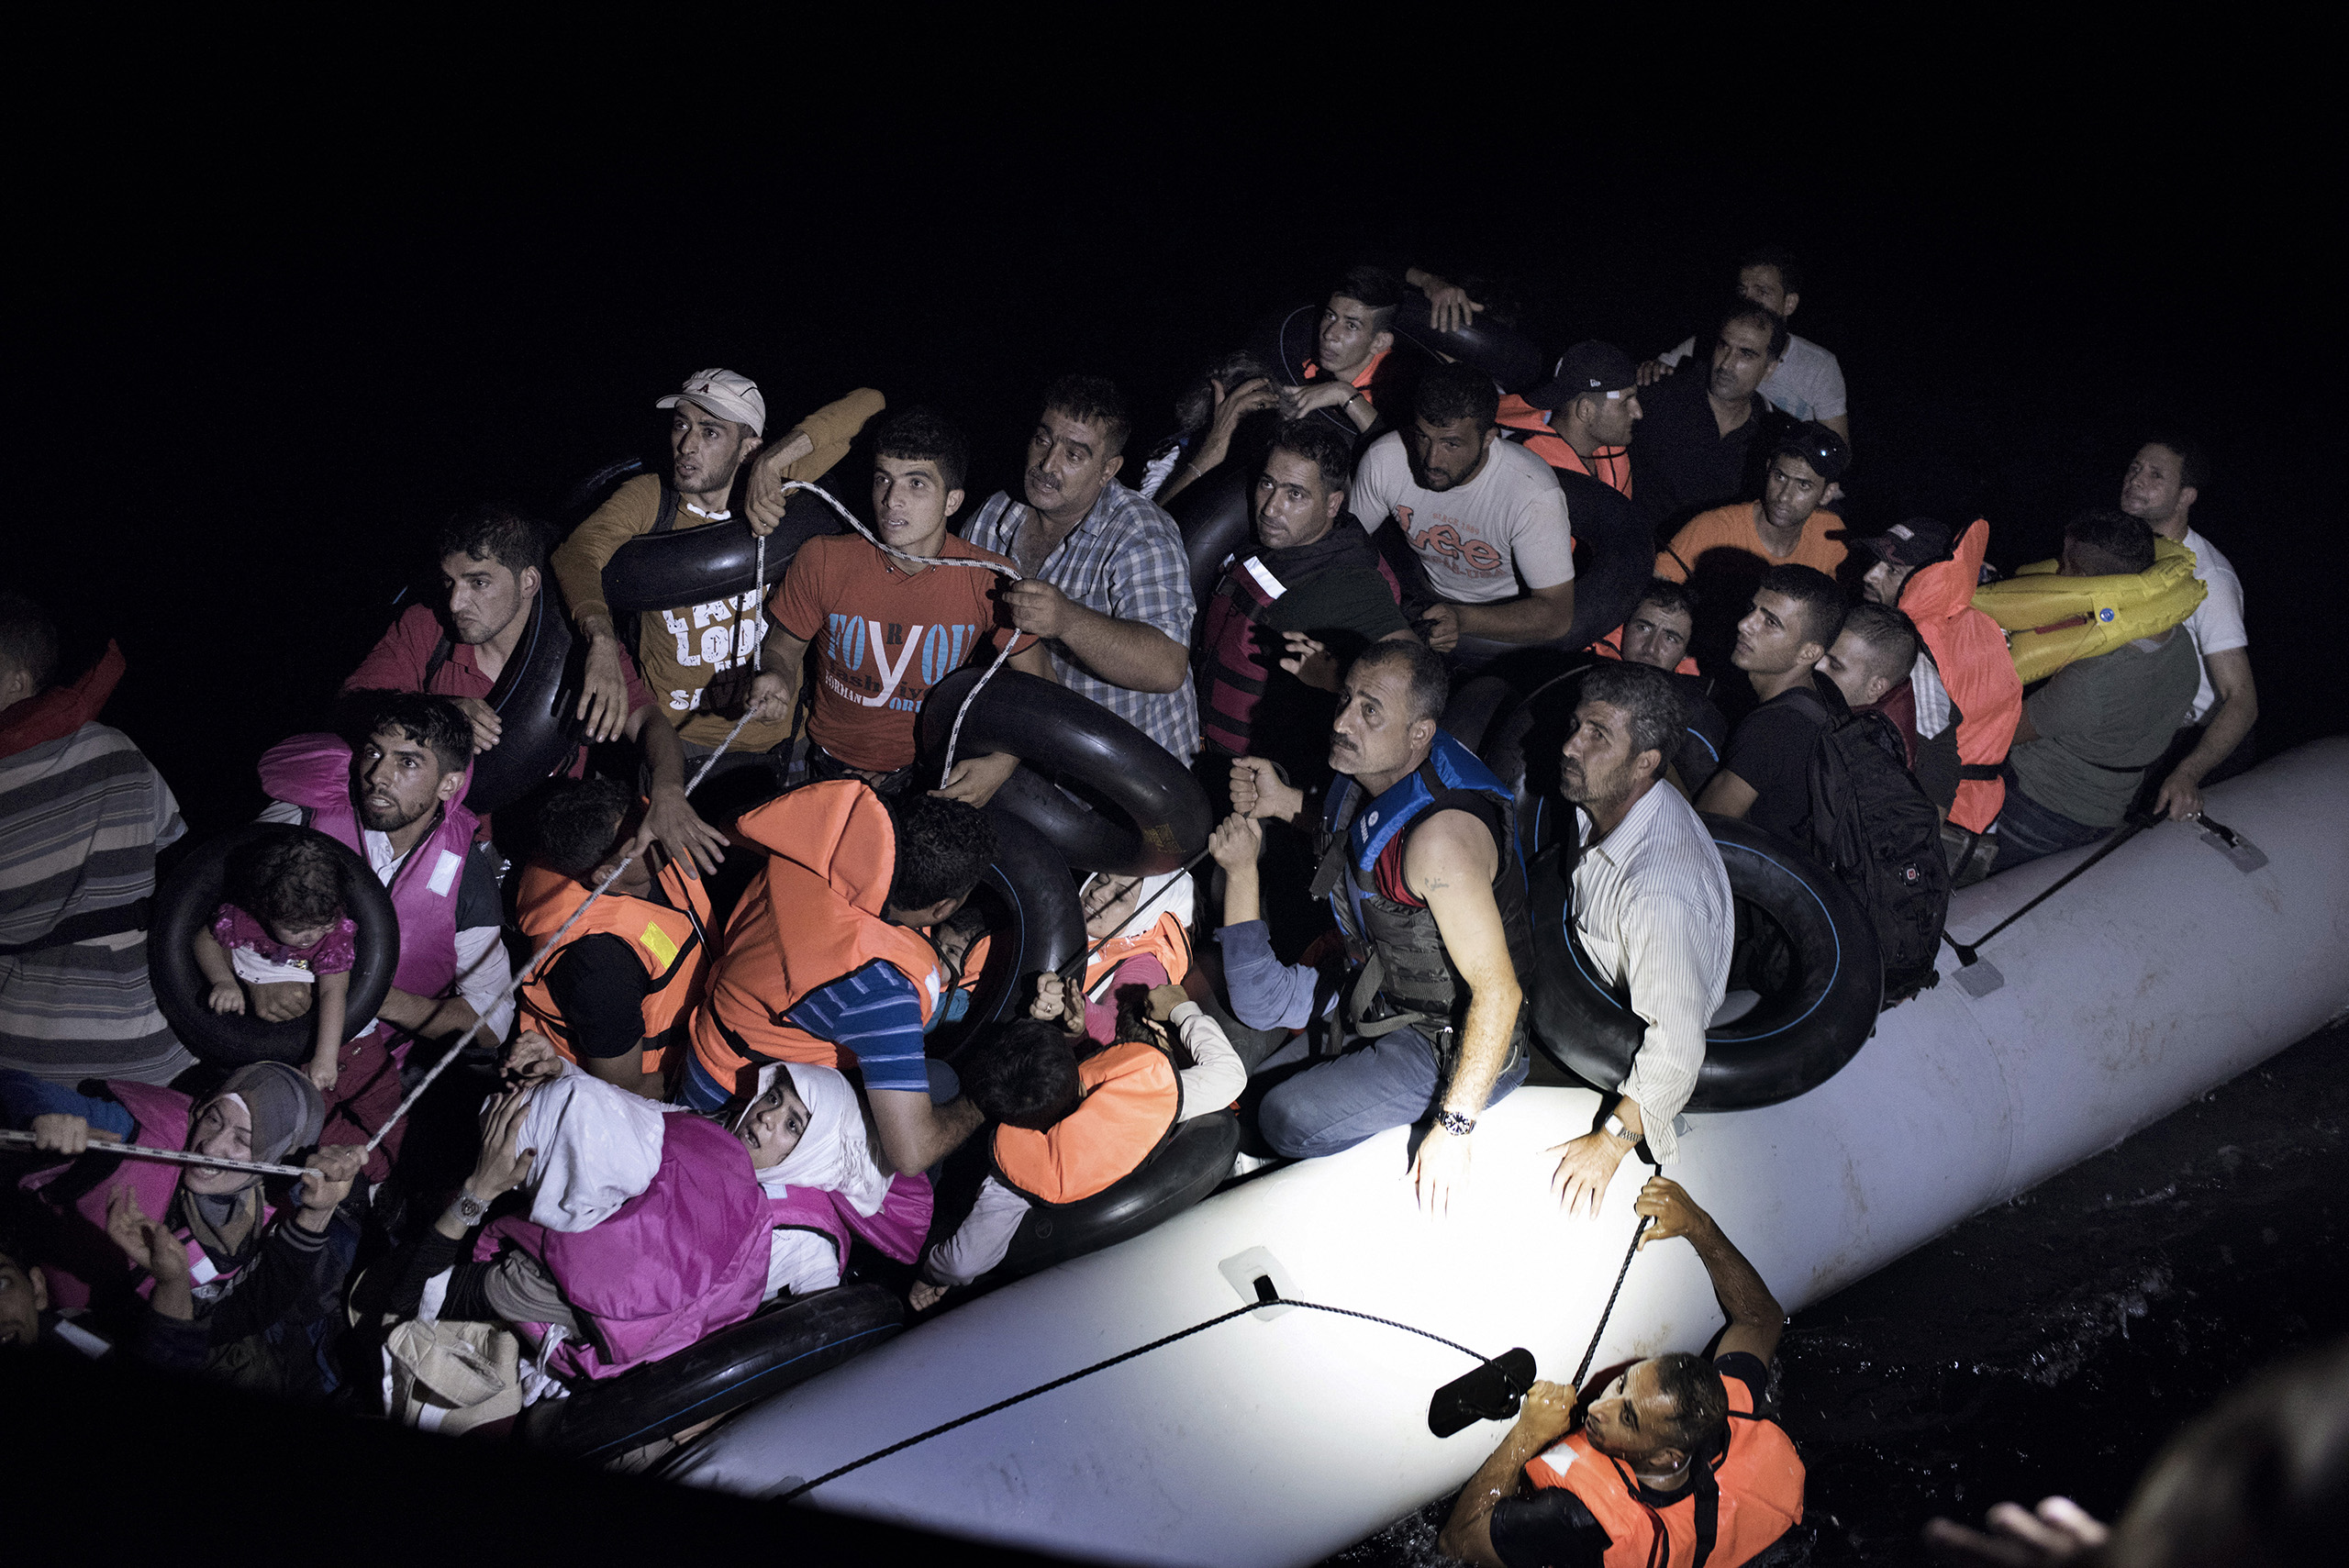 A migrant scrambles to climb back aboard a rubber dinghy full of his fellow Syrians as they try to cross from Turkey to the Greek islands on their way to claim asylum in the European Union. Sept. 6, 2015.